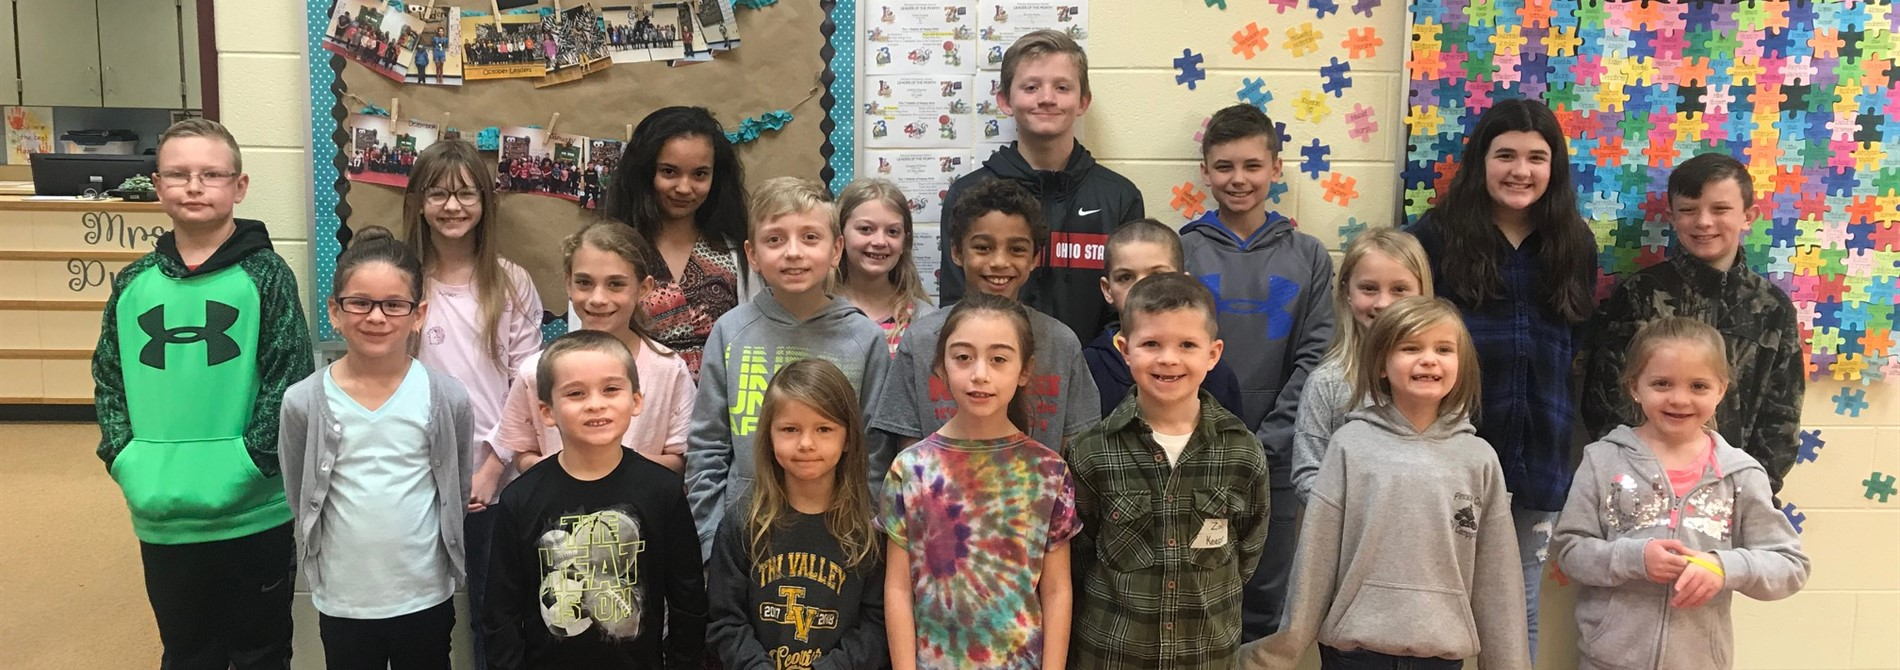 Congrats to March Leaders of the Month!!